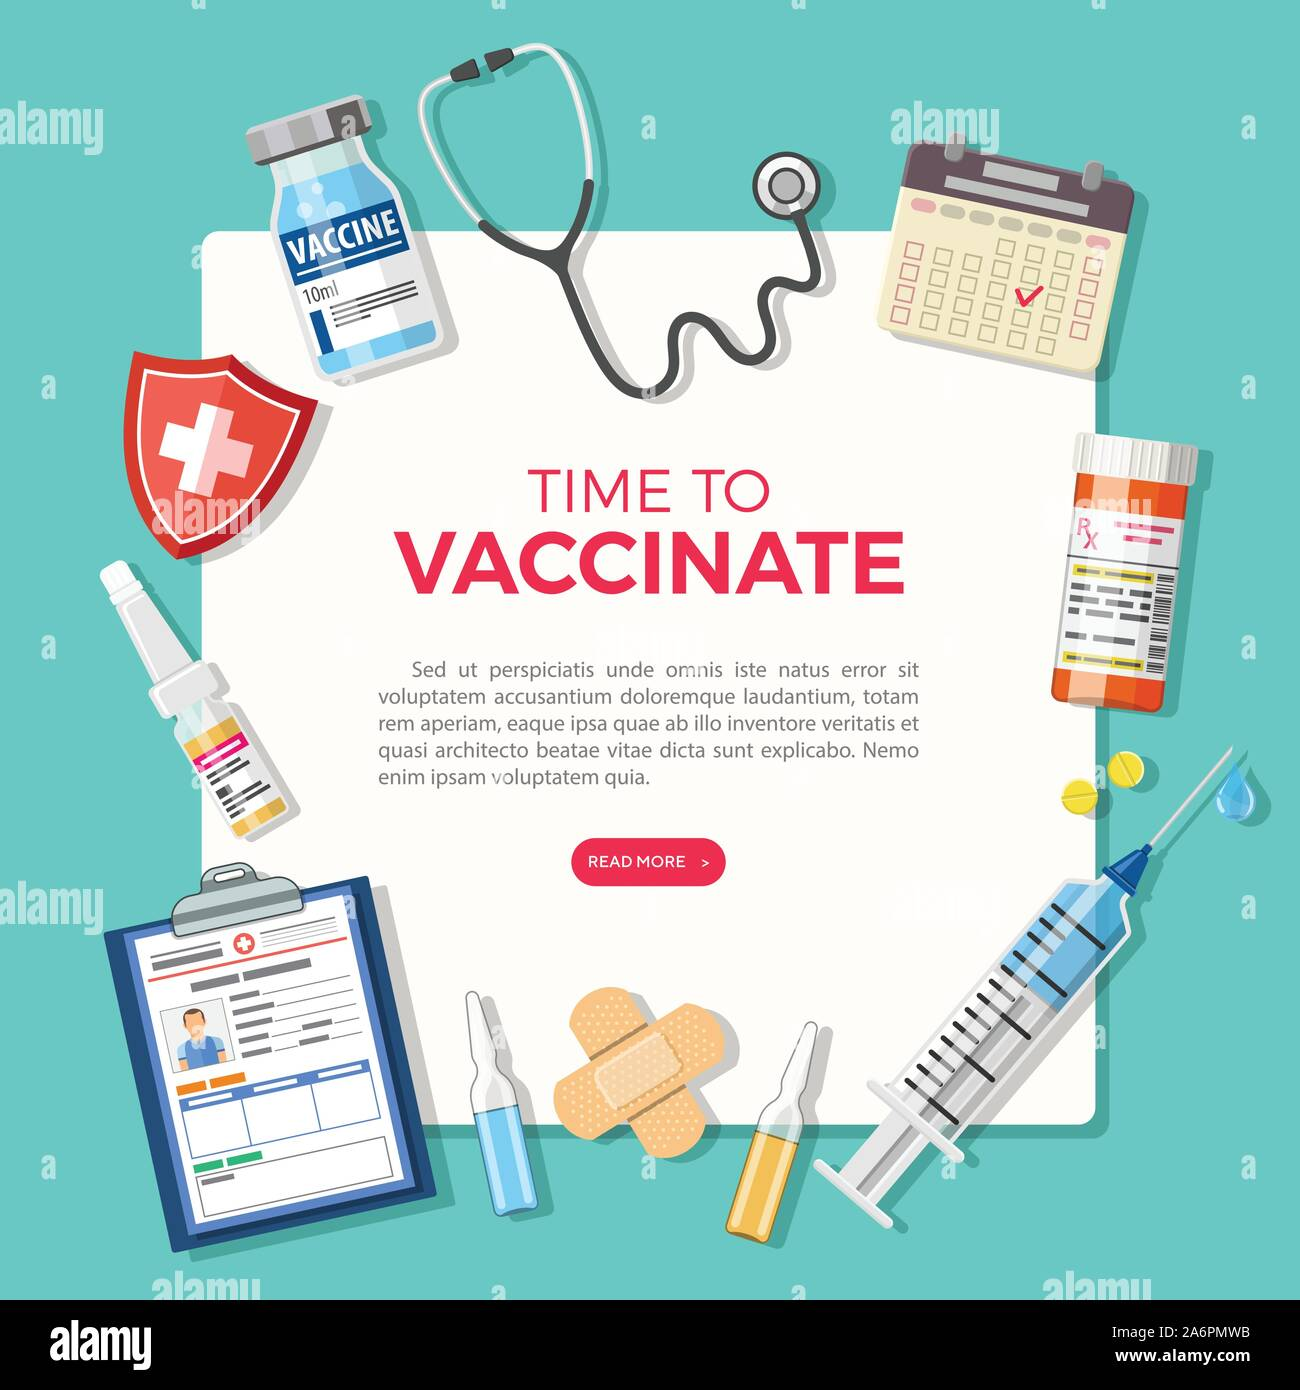 Flu Vaccination Poster High Resolution Stock Photography And Images Alamy